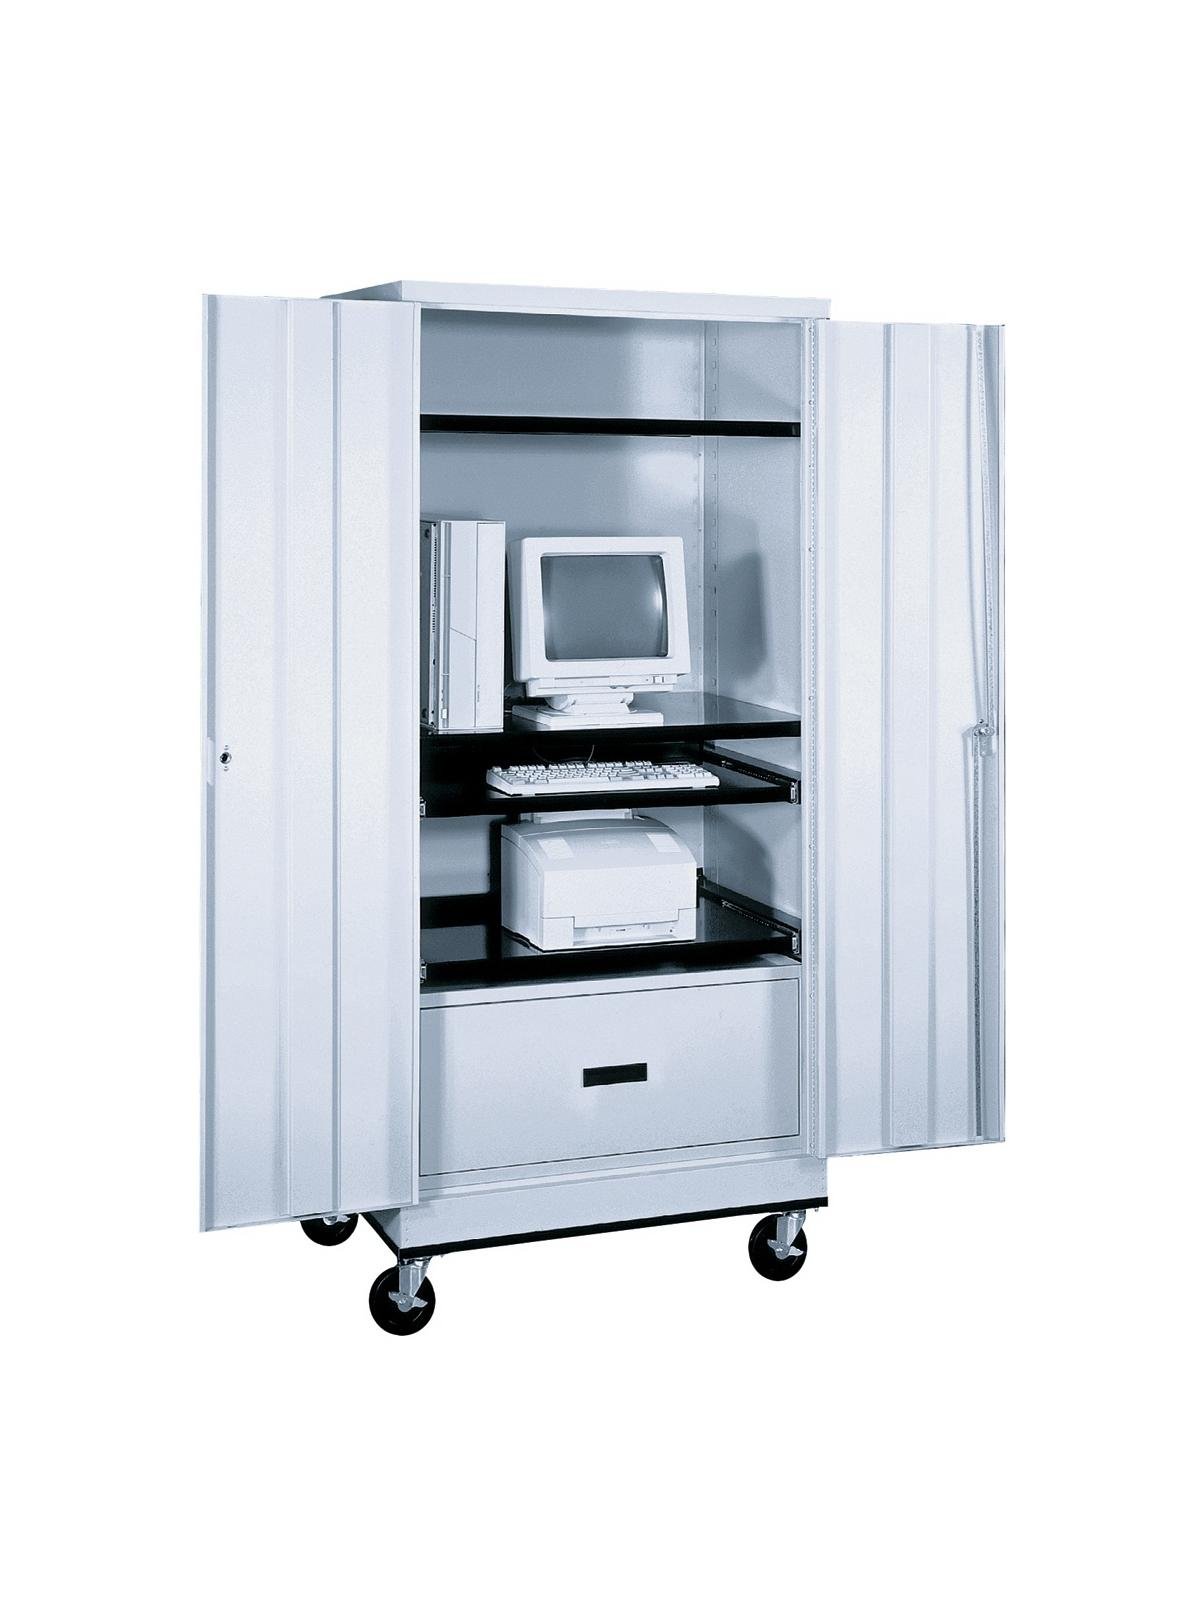 Mobile Computer Cabinet At Nationwide Industrial Supply Llc